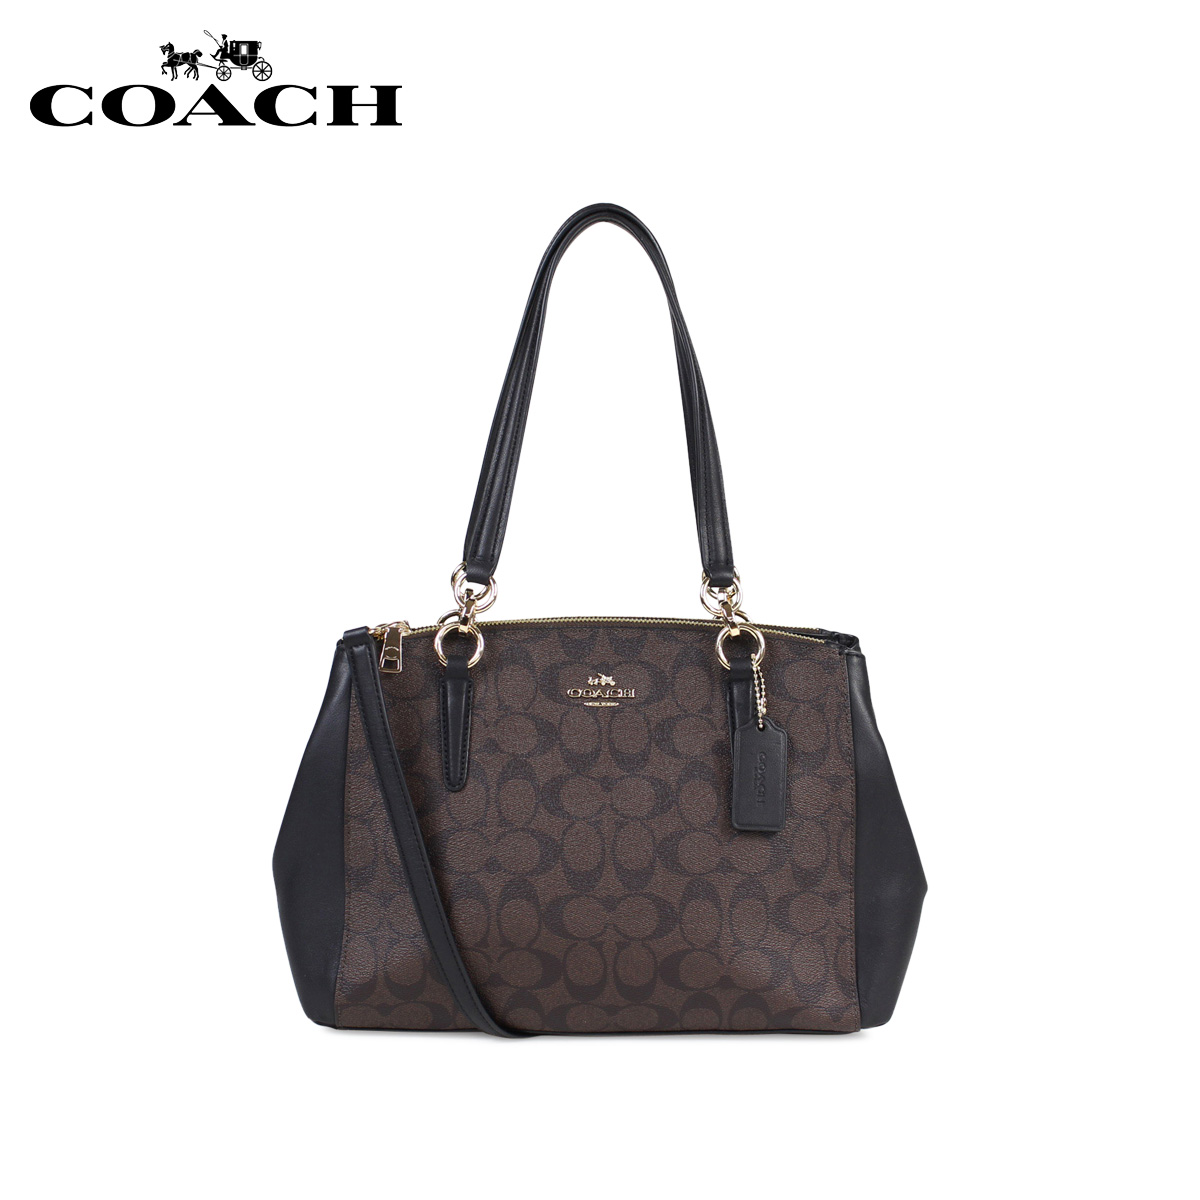 62c0619c54565 COACH SMALL CHRISTIE CARRYALL IN SIGNATURE coach bag tote bag shoulder bag  Lady s F58291 brown  11 13 Shinnyu load   1711